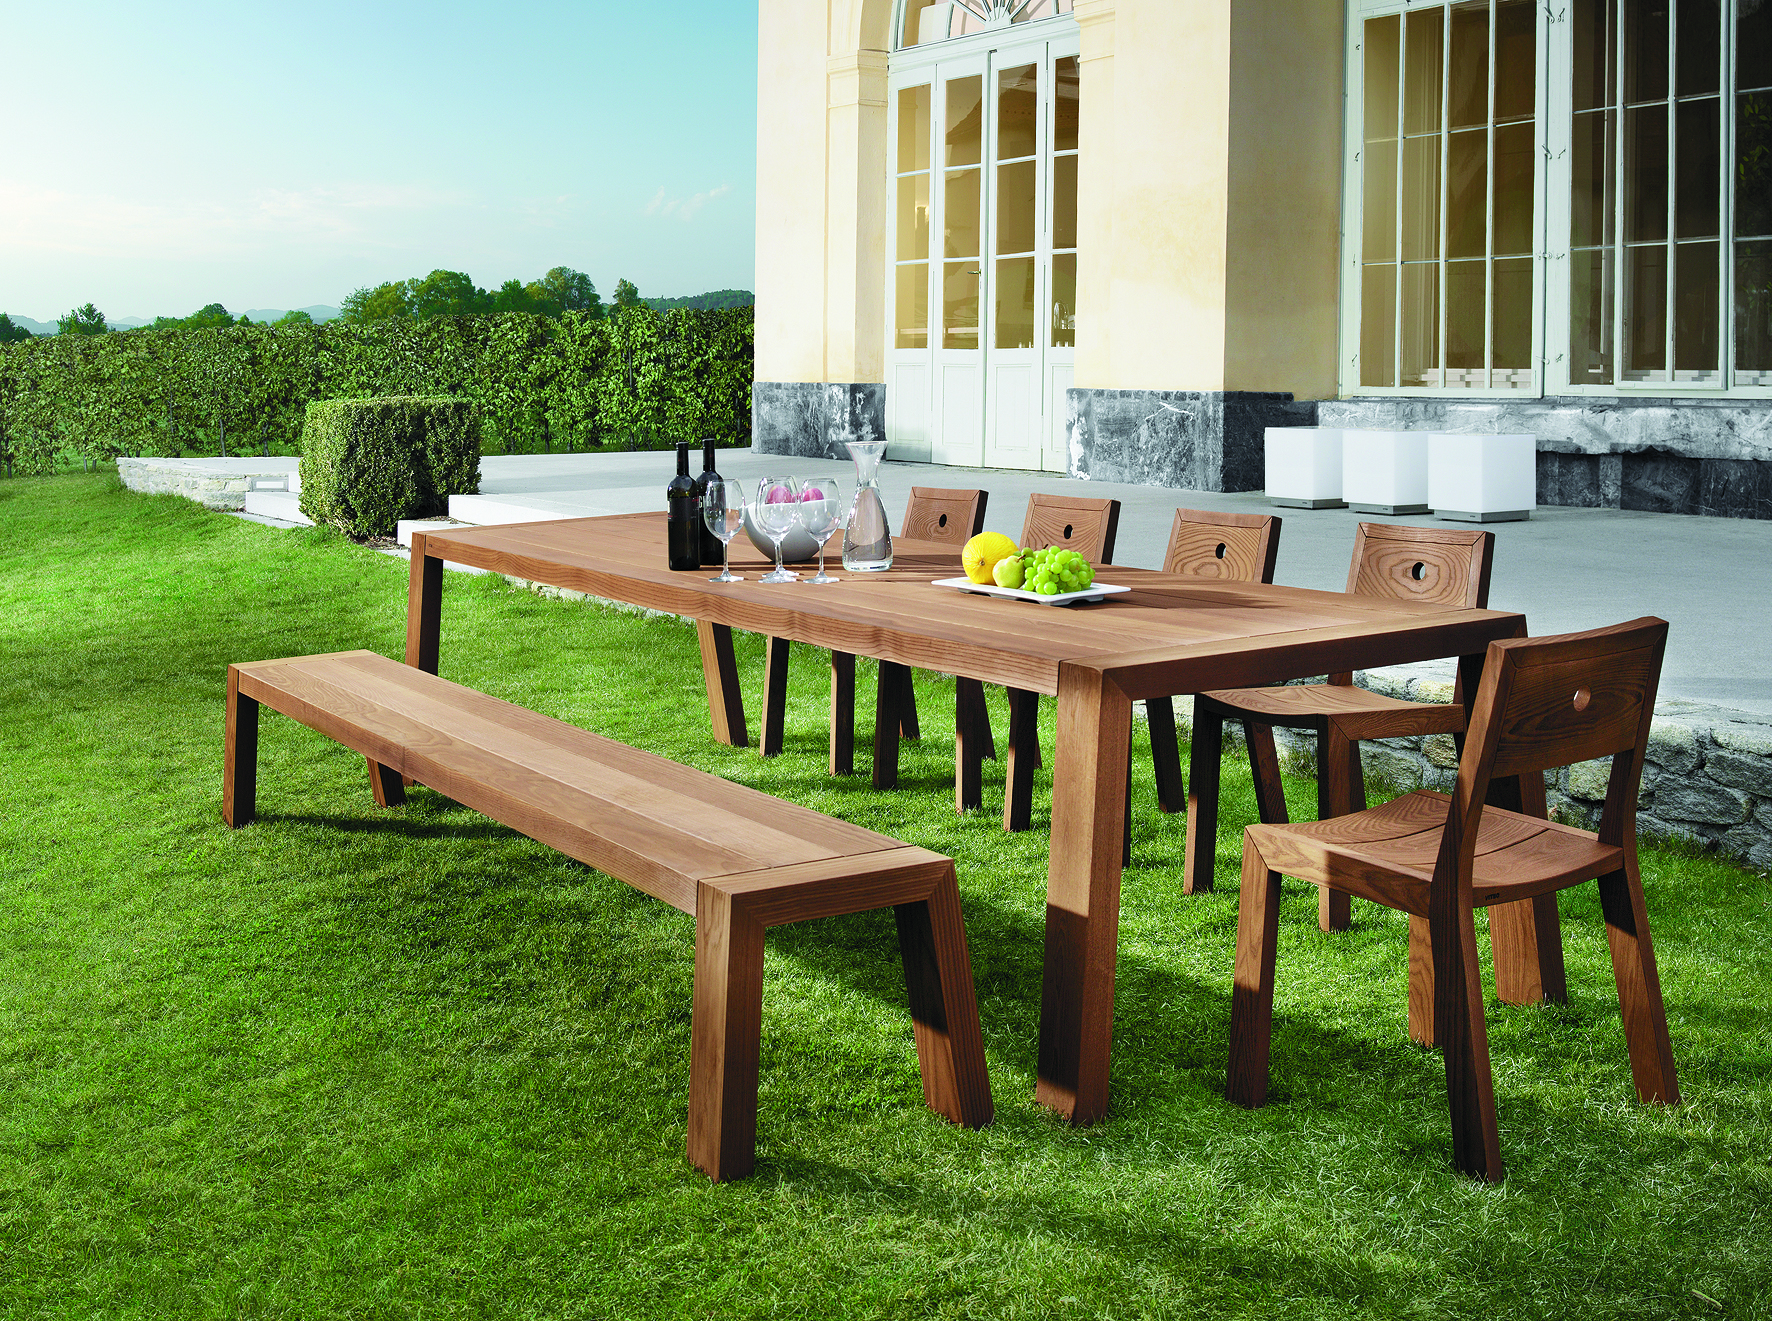 Encompass furniture new products spring 2010 modern for Designer garden furniture